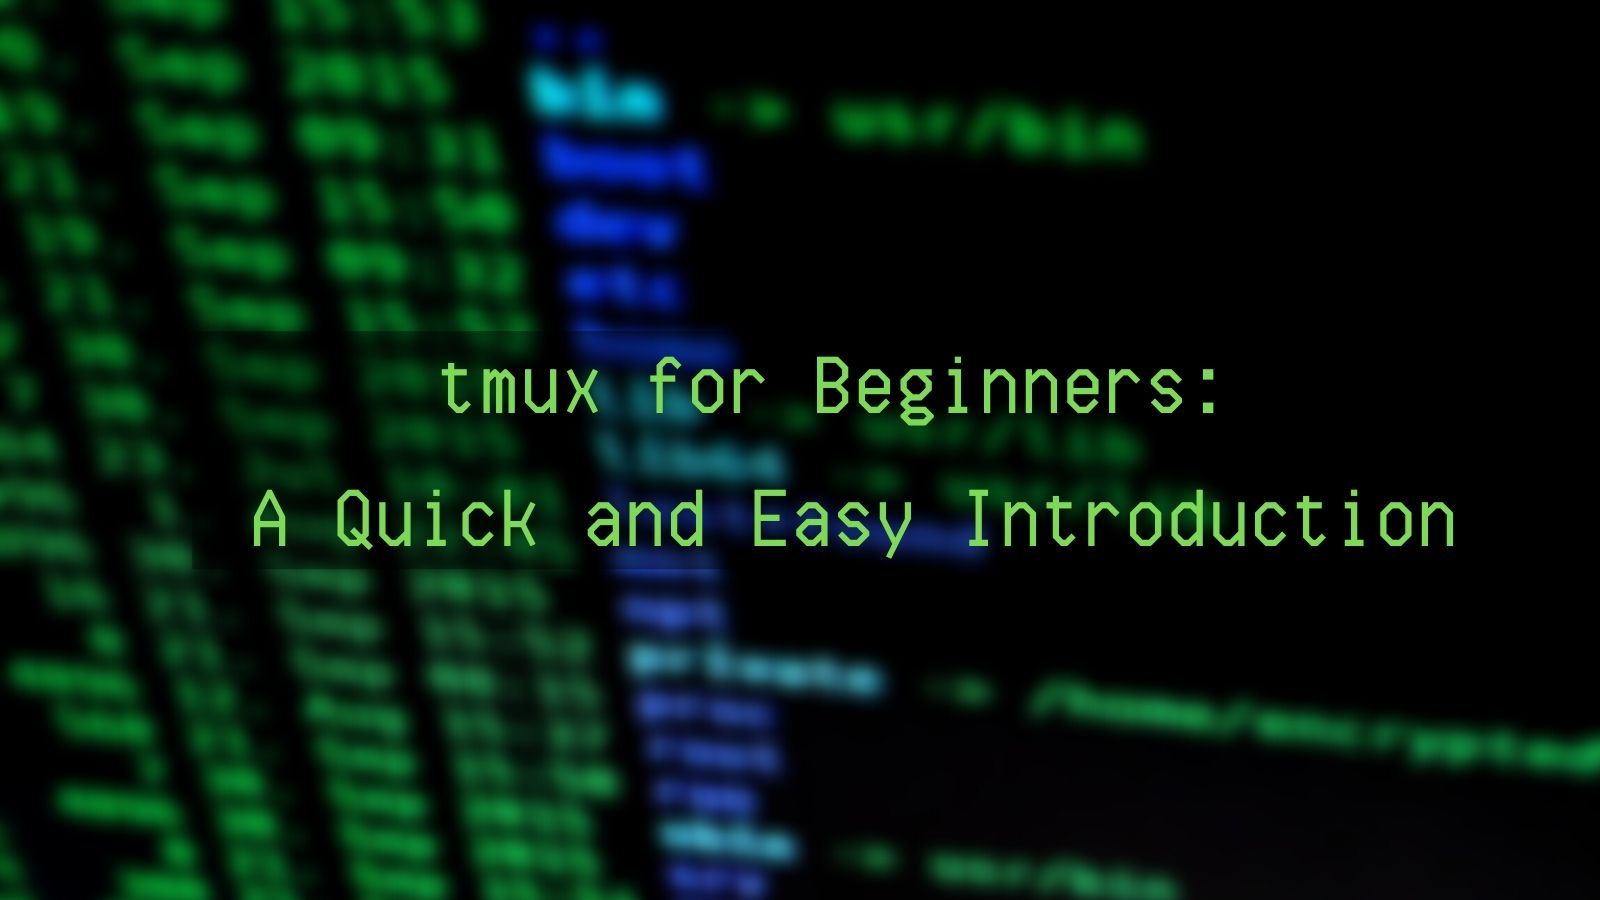 tmux for Beginners: A Quick and Easy Introduction